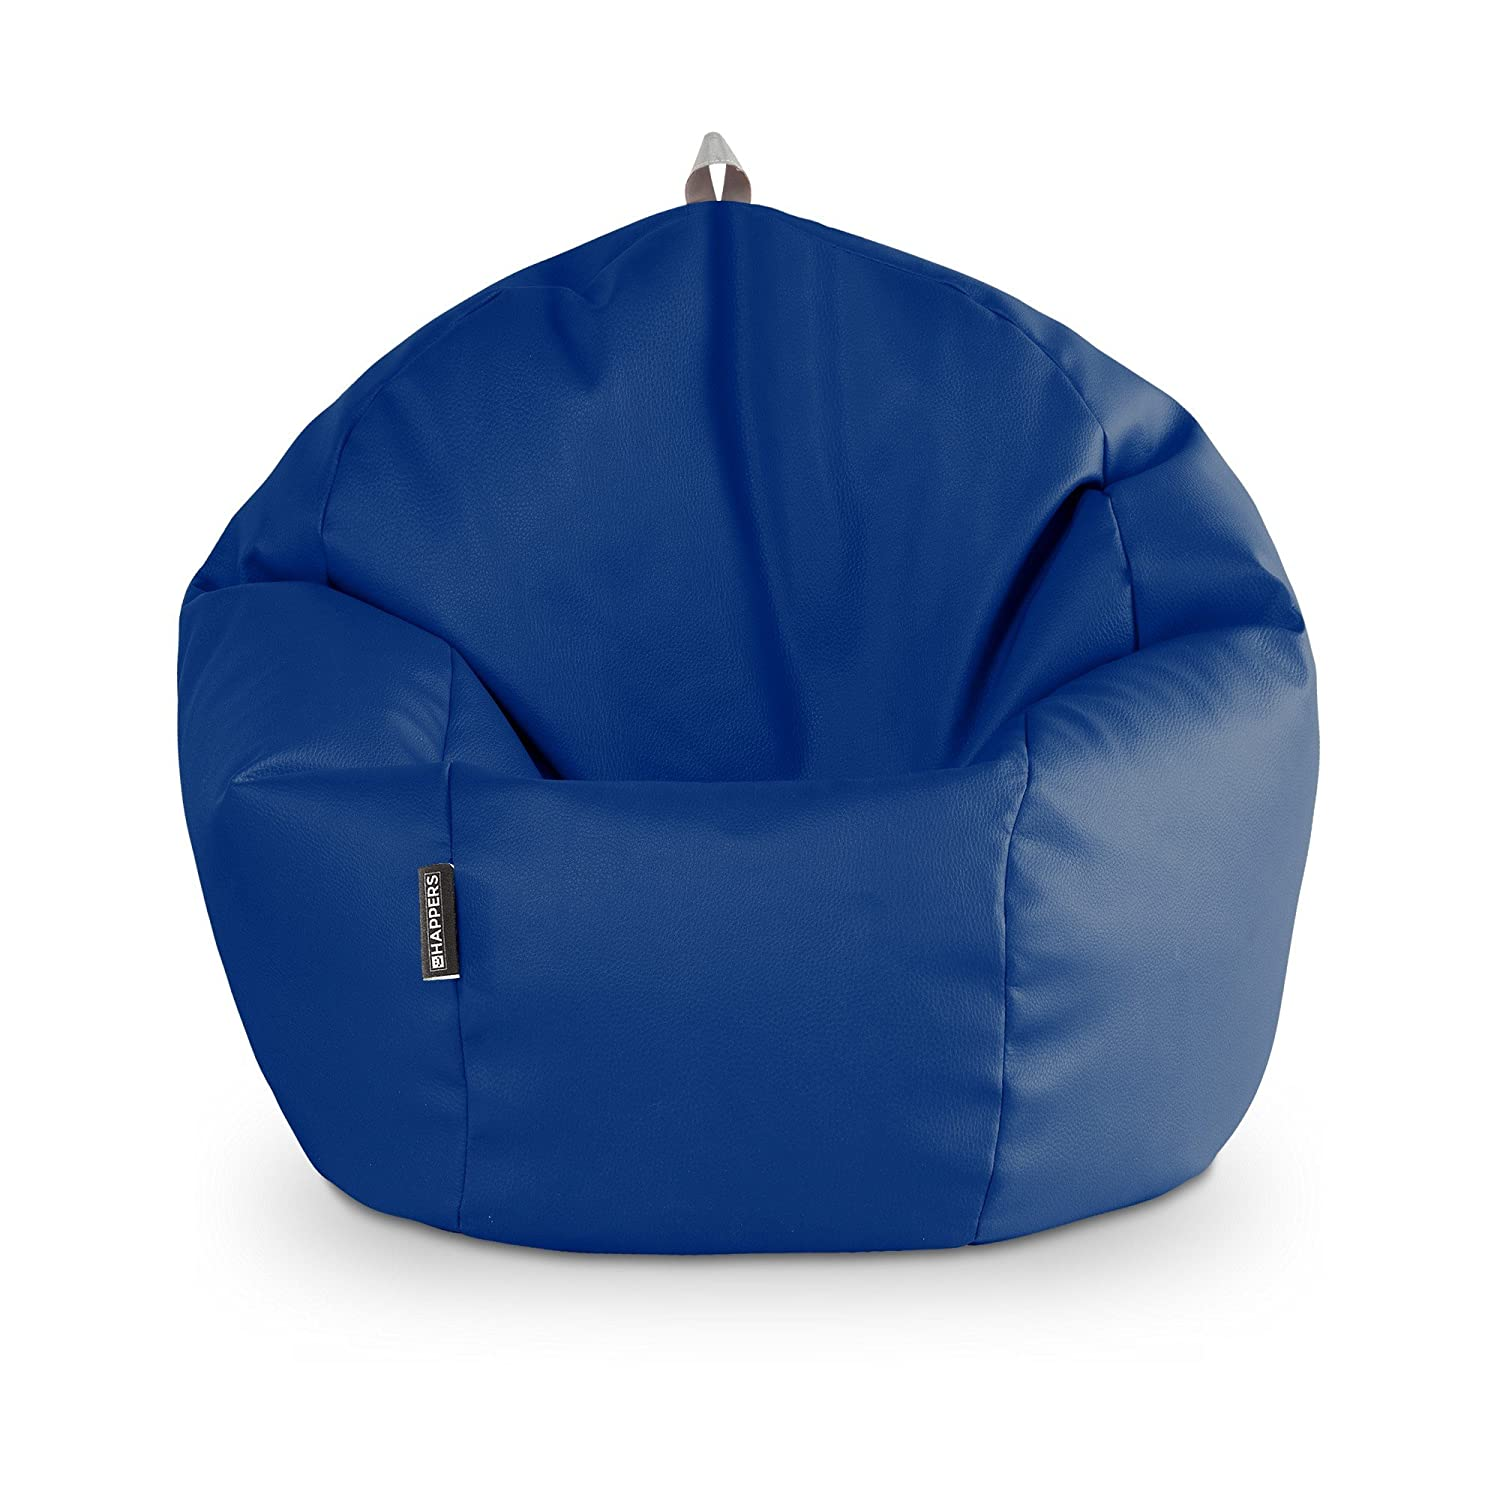 HAPPERS Puff Pelota Polipiel Outdoor Azul: Amazon.es: Hogar